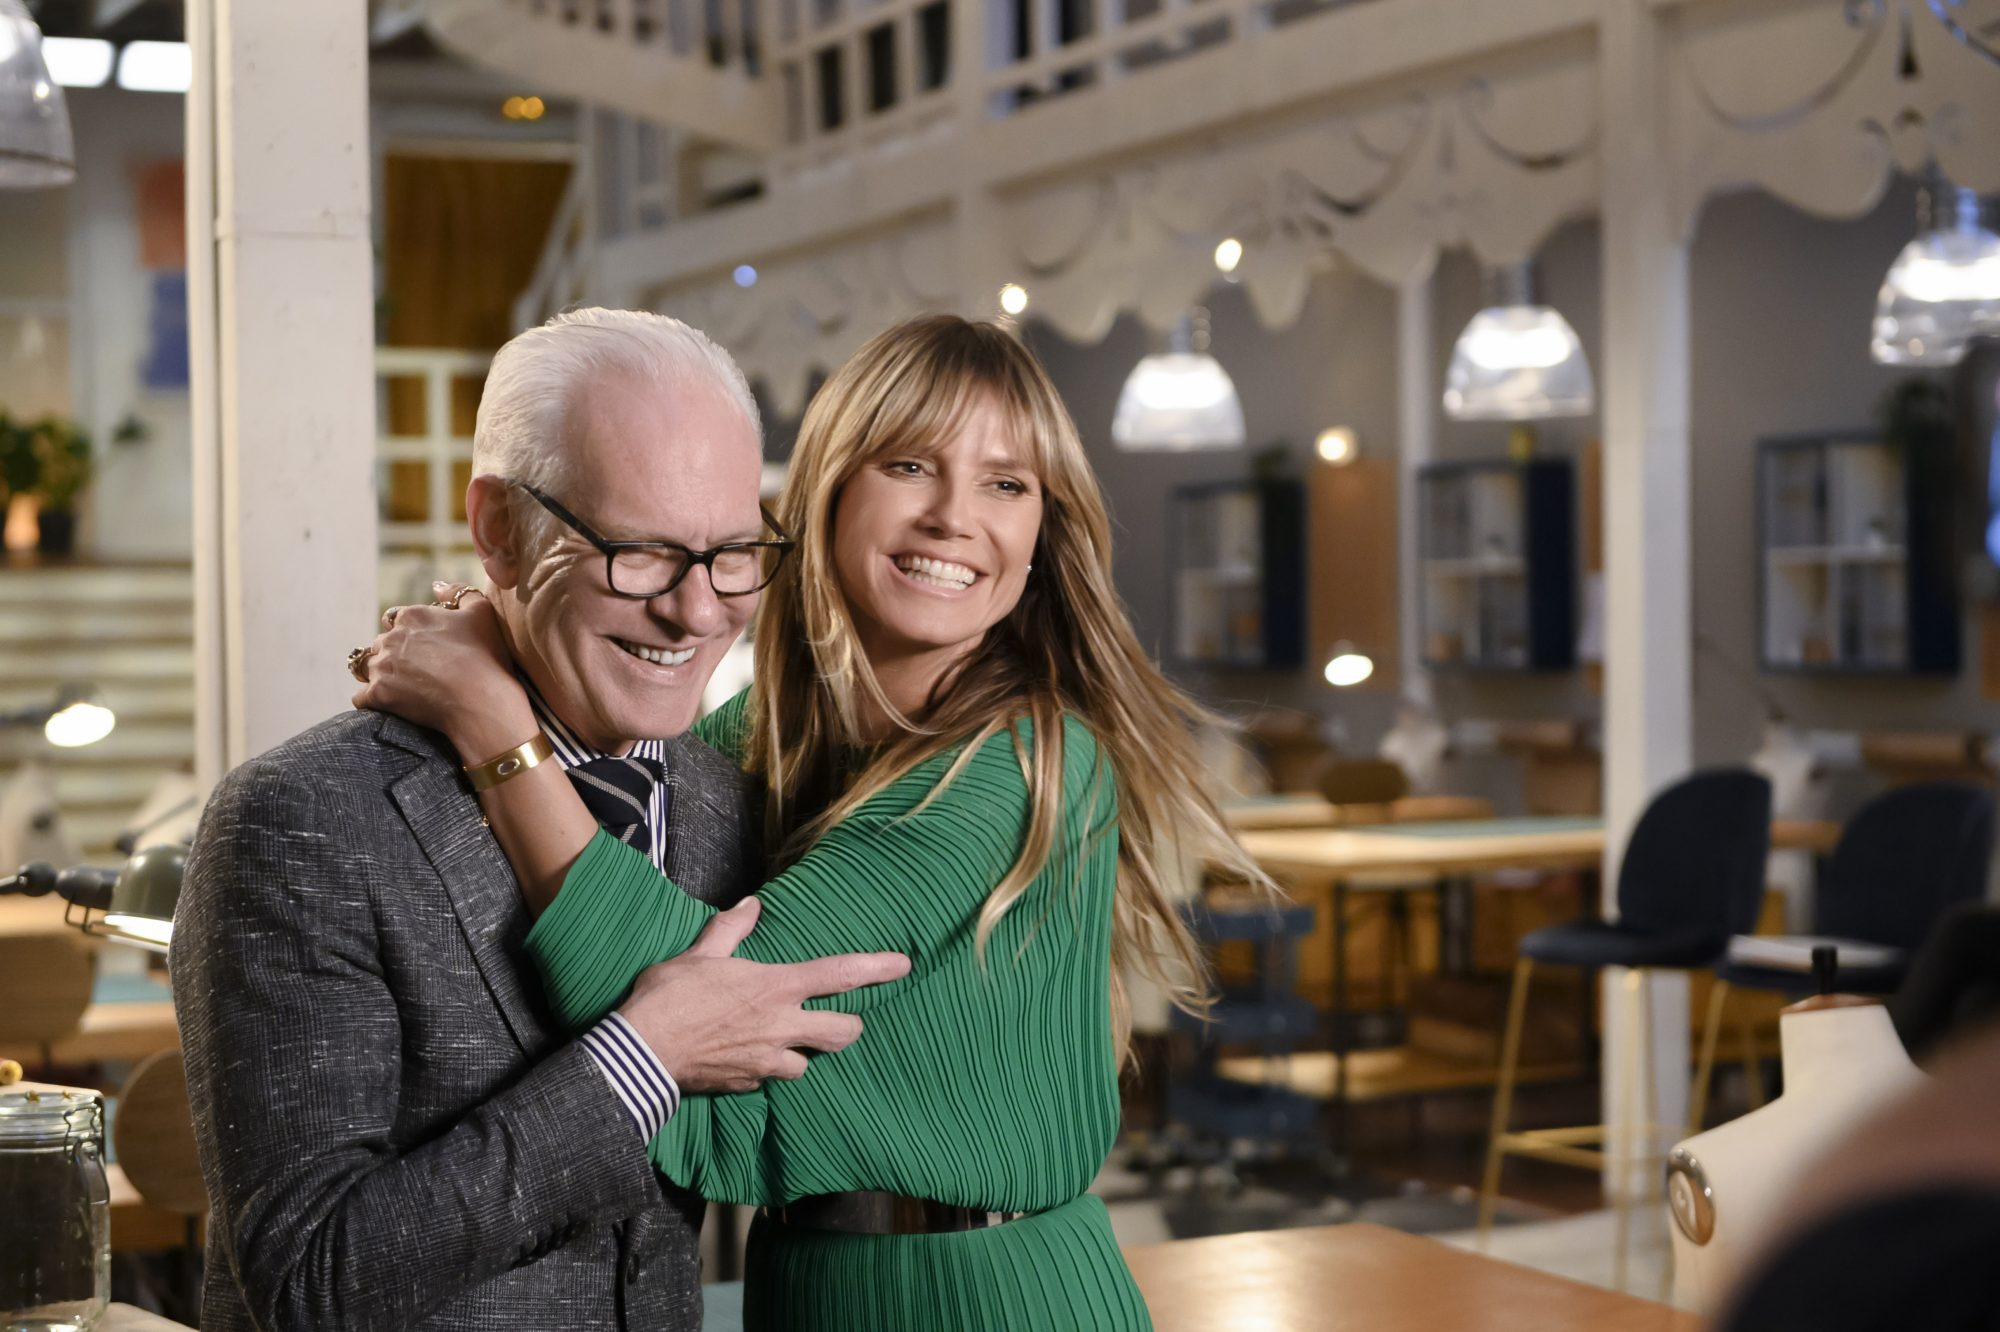 Tim Gunn and Heidi Klum Hug Finale